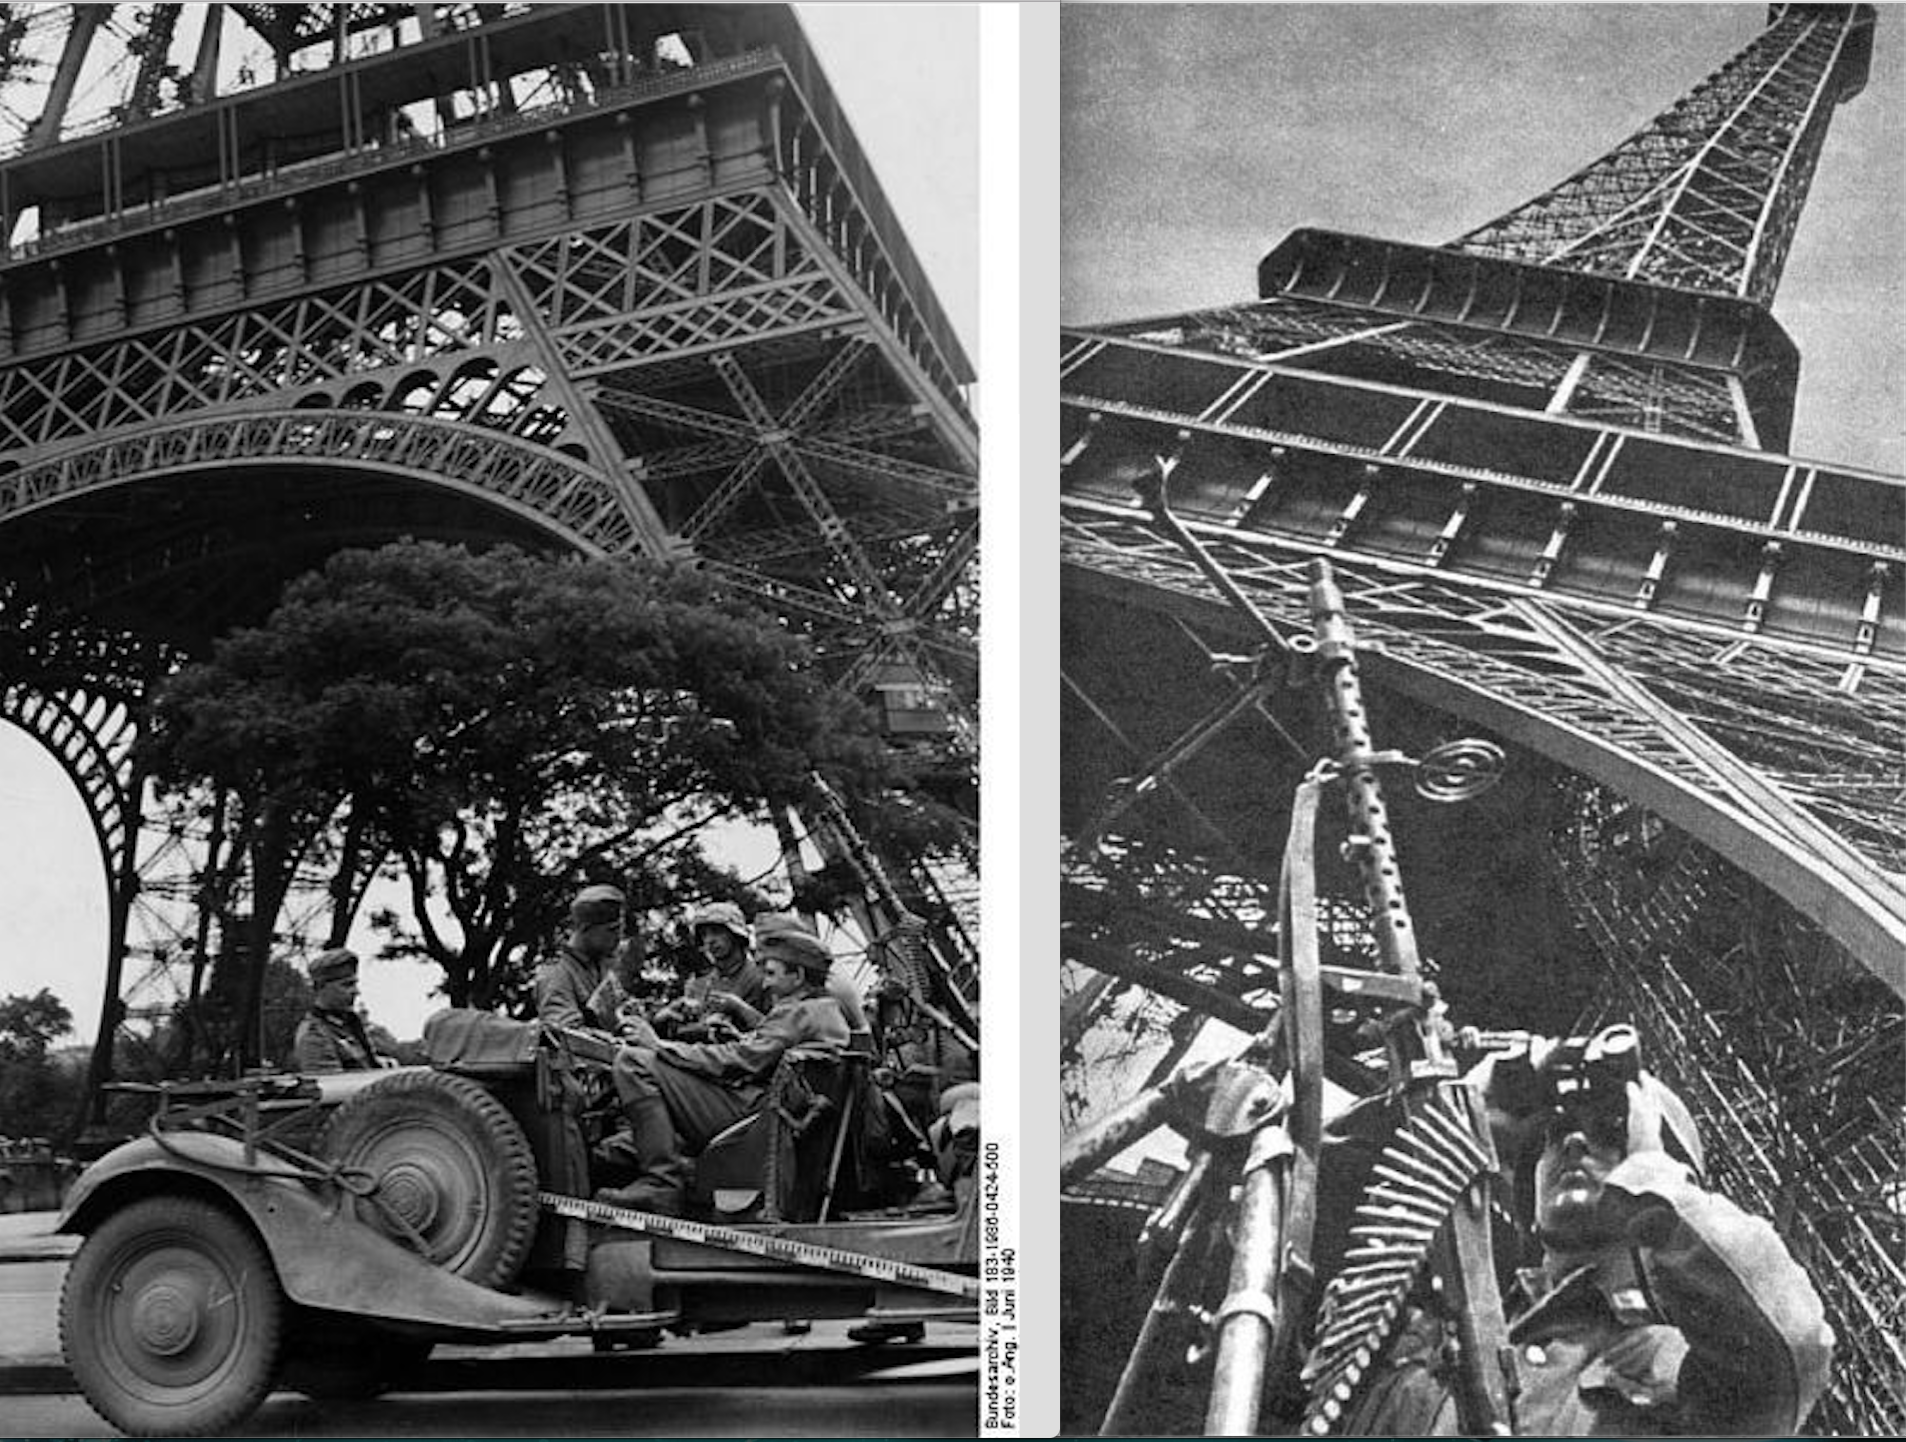 Horch 830R AntiAirCraft Eiffel Tower Paris June 1940